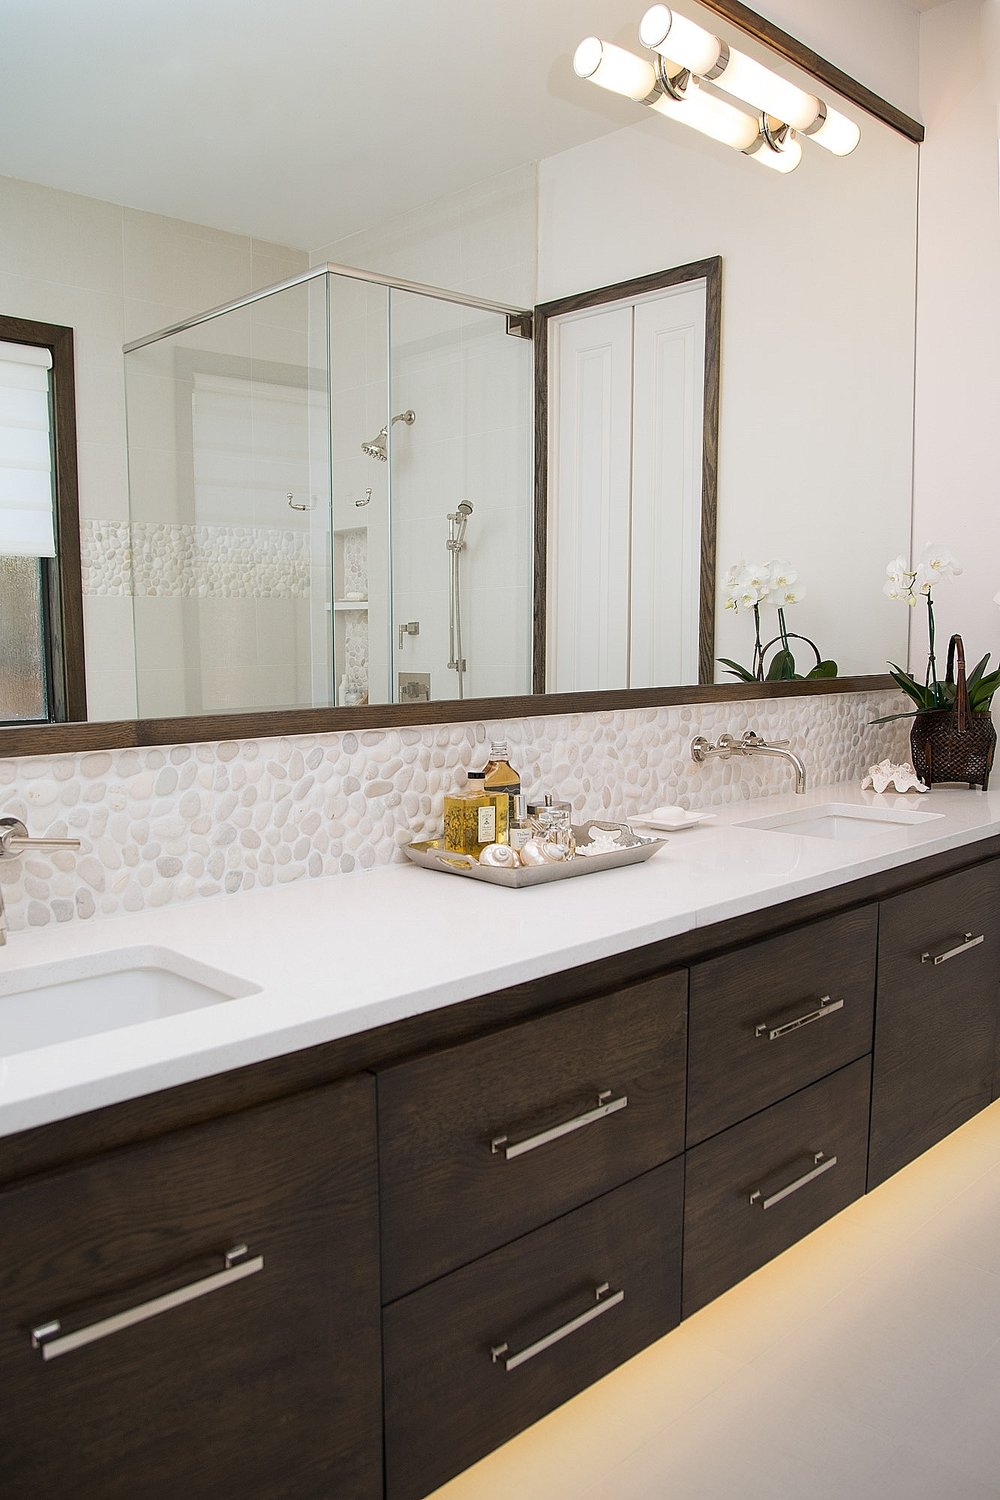 11 simple ways to make a small bathroom look BIGGER — DESIGNED